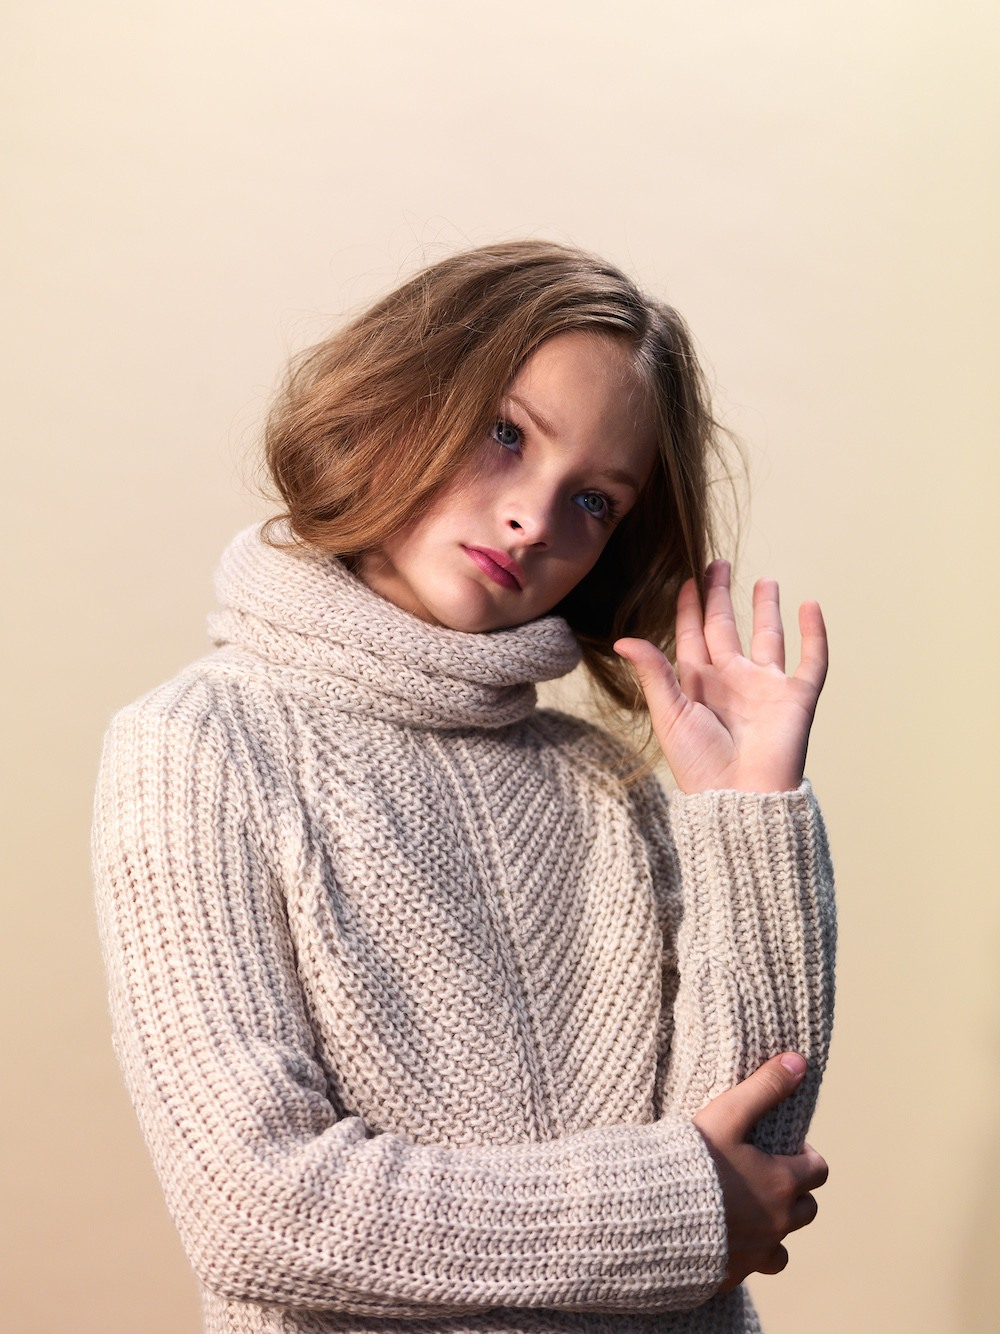 Girl-large-sweater-portrait-photography.jpg